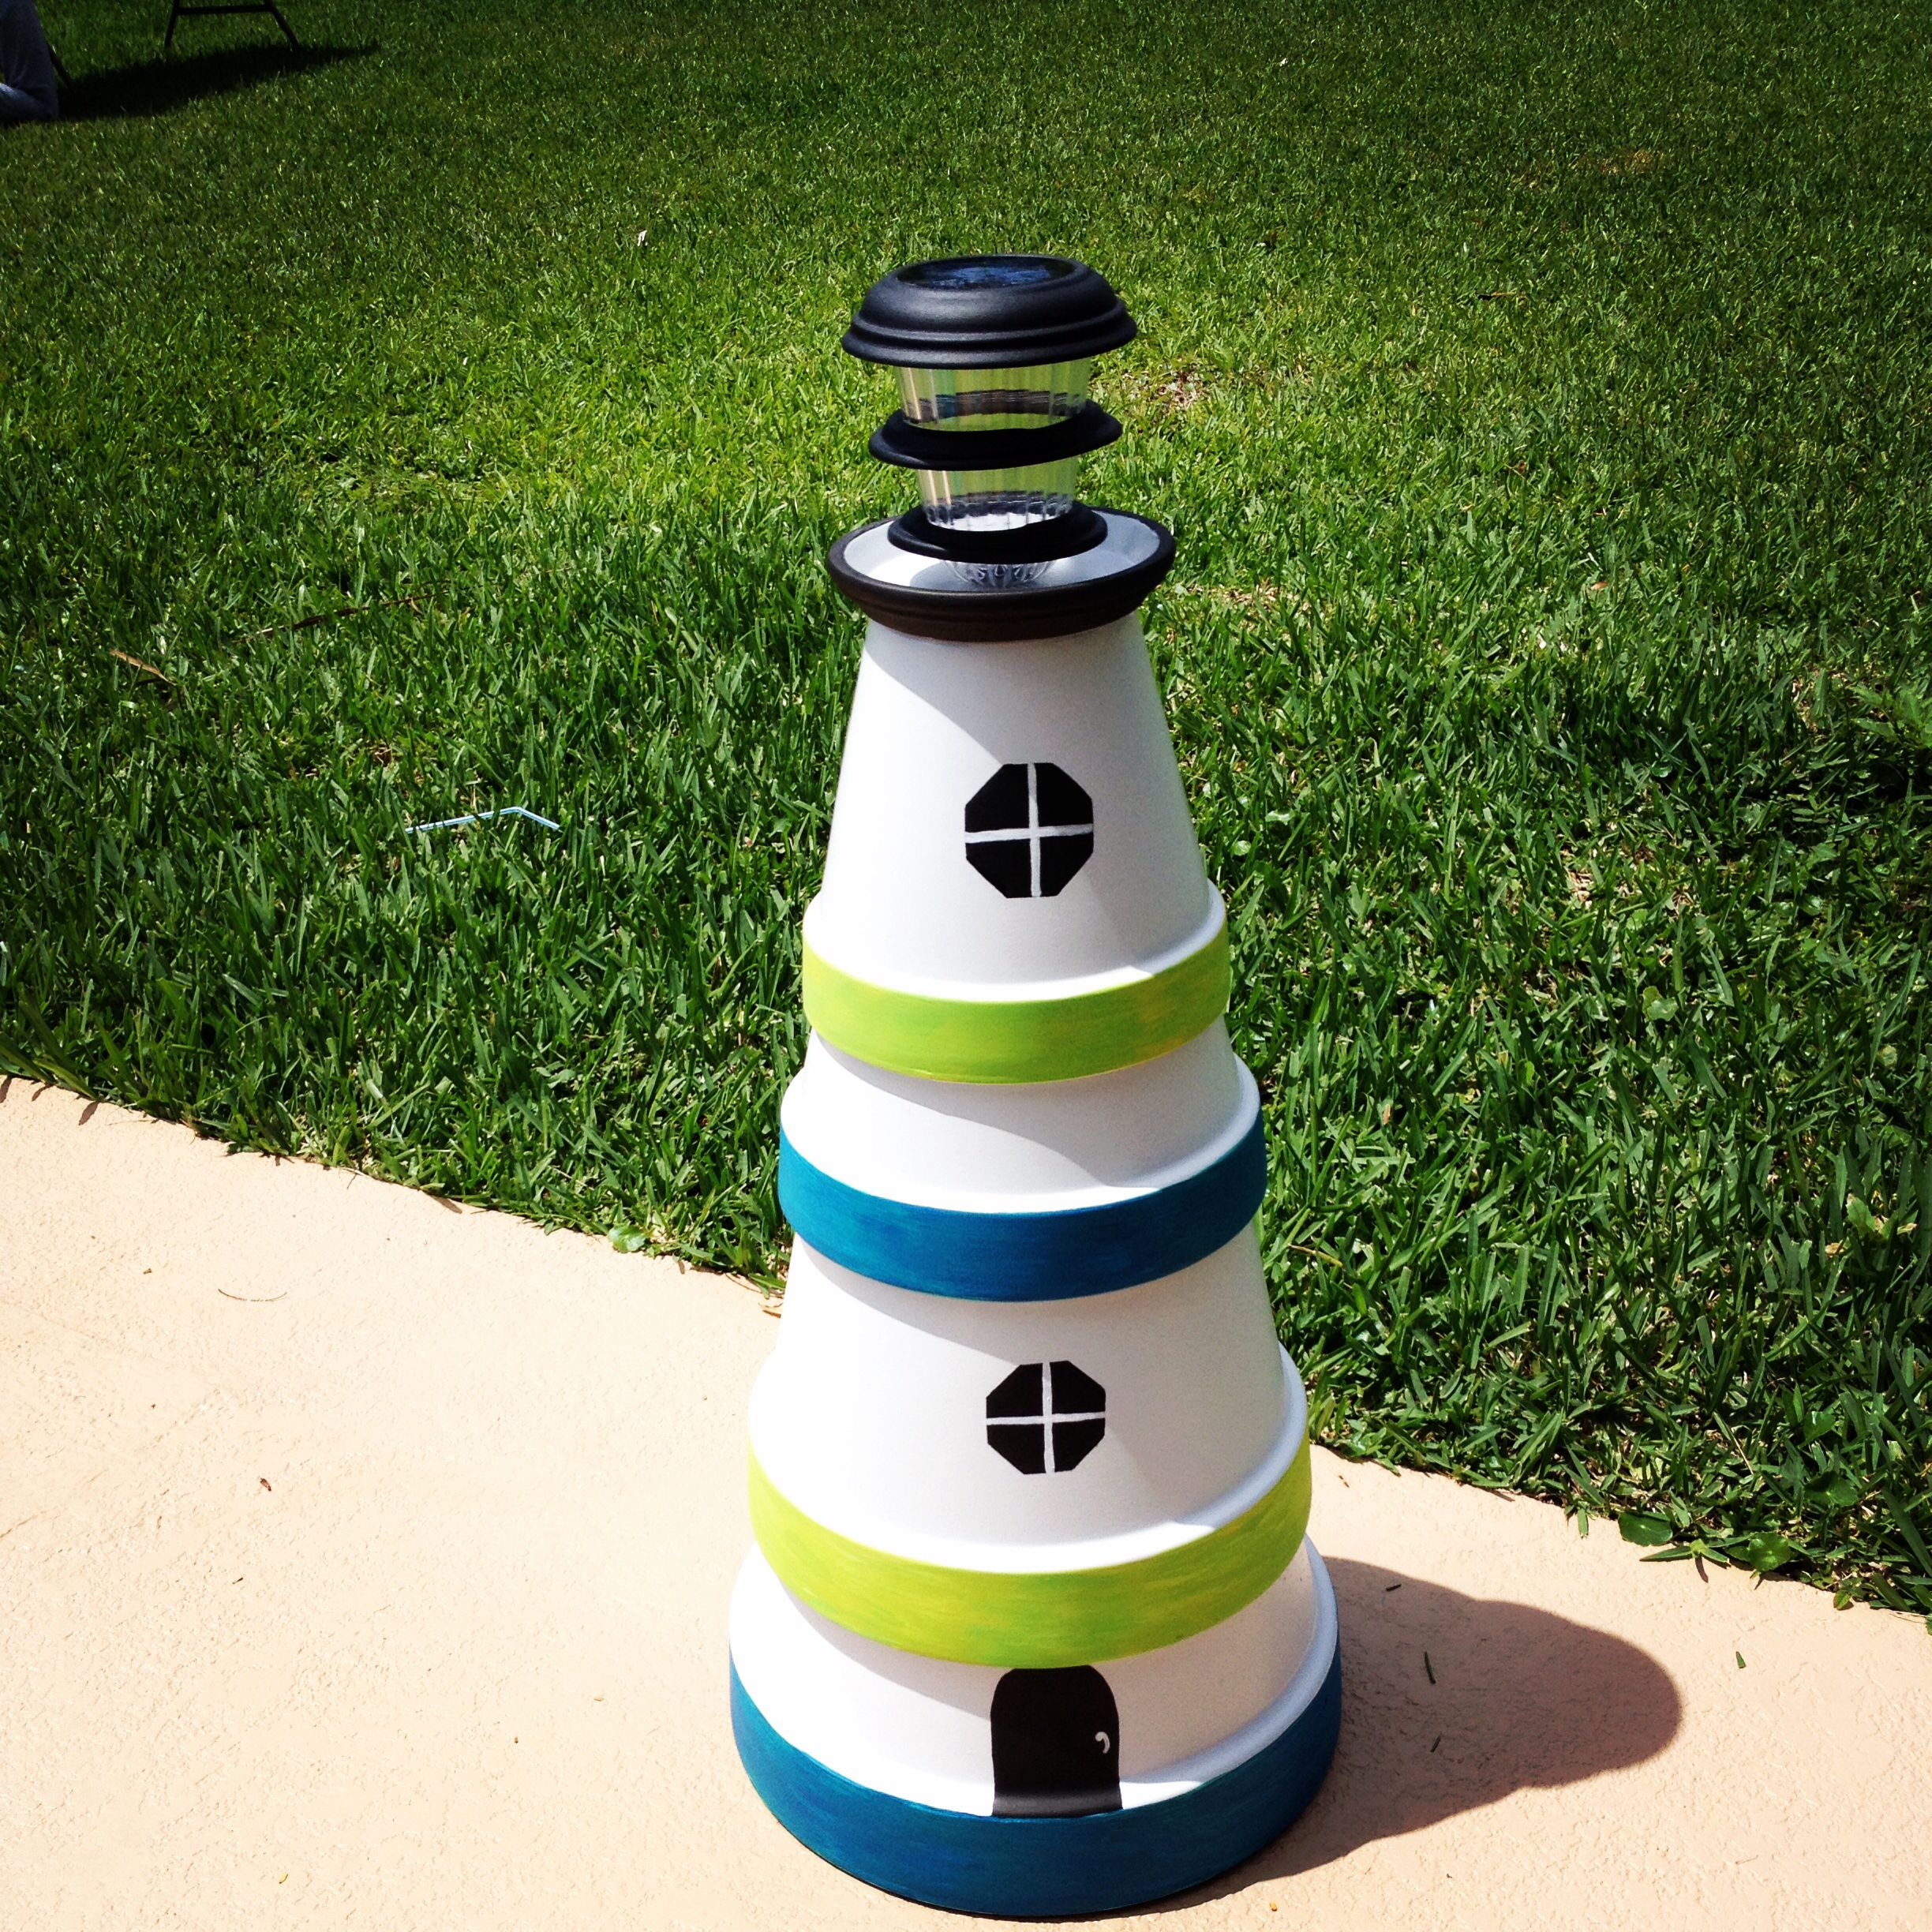 Diy make a clay pot lighthouse diy craft projects - An Album Showing Different Diy Clay Pot Lighthouse Inspiration